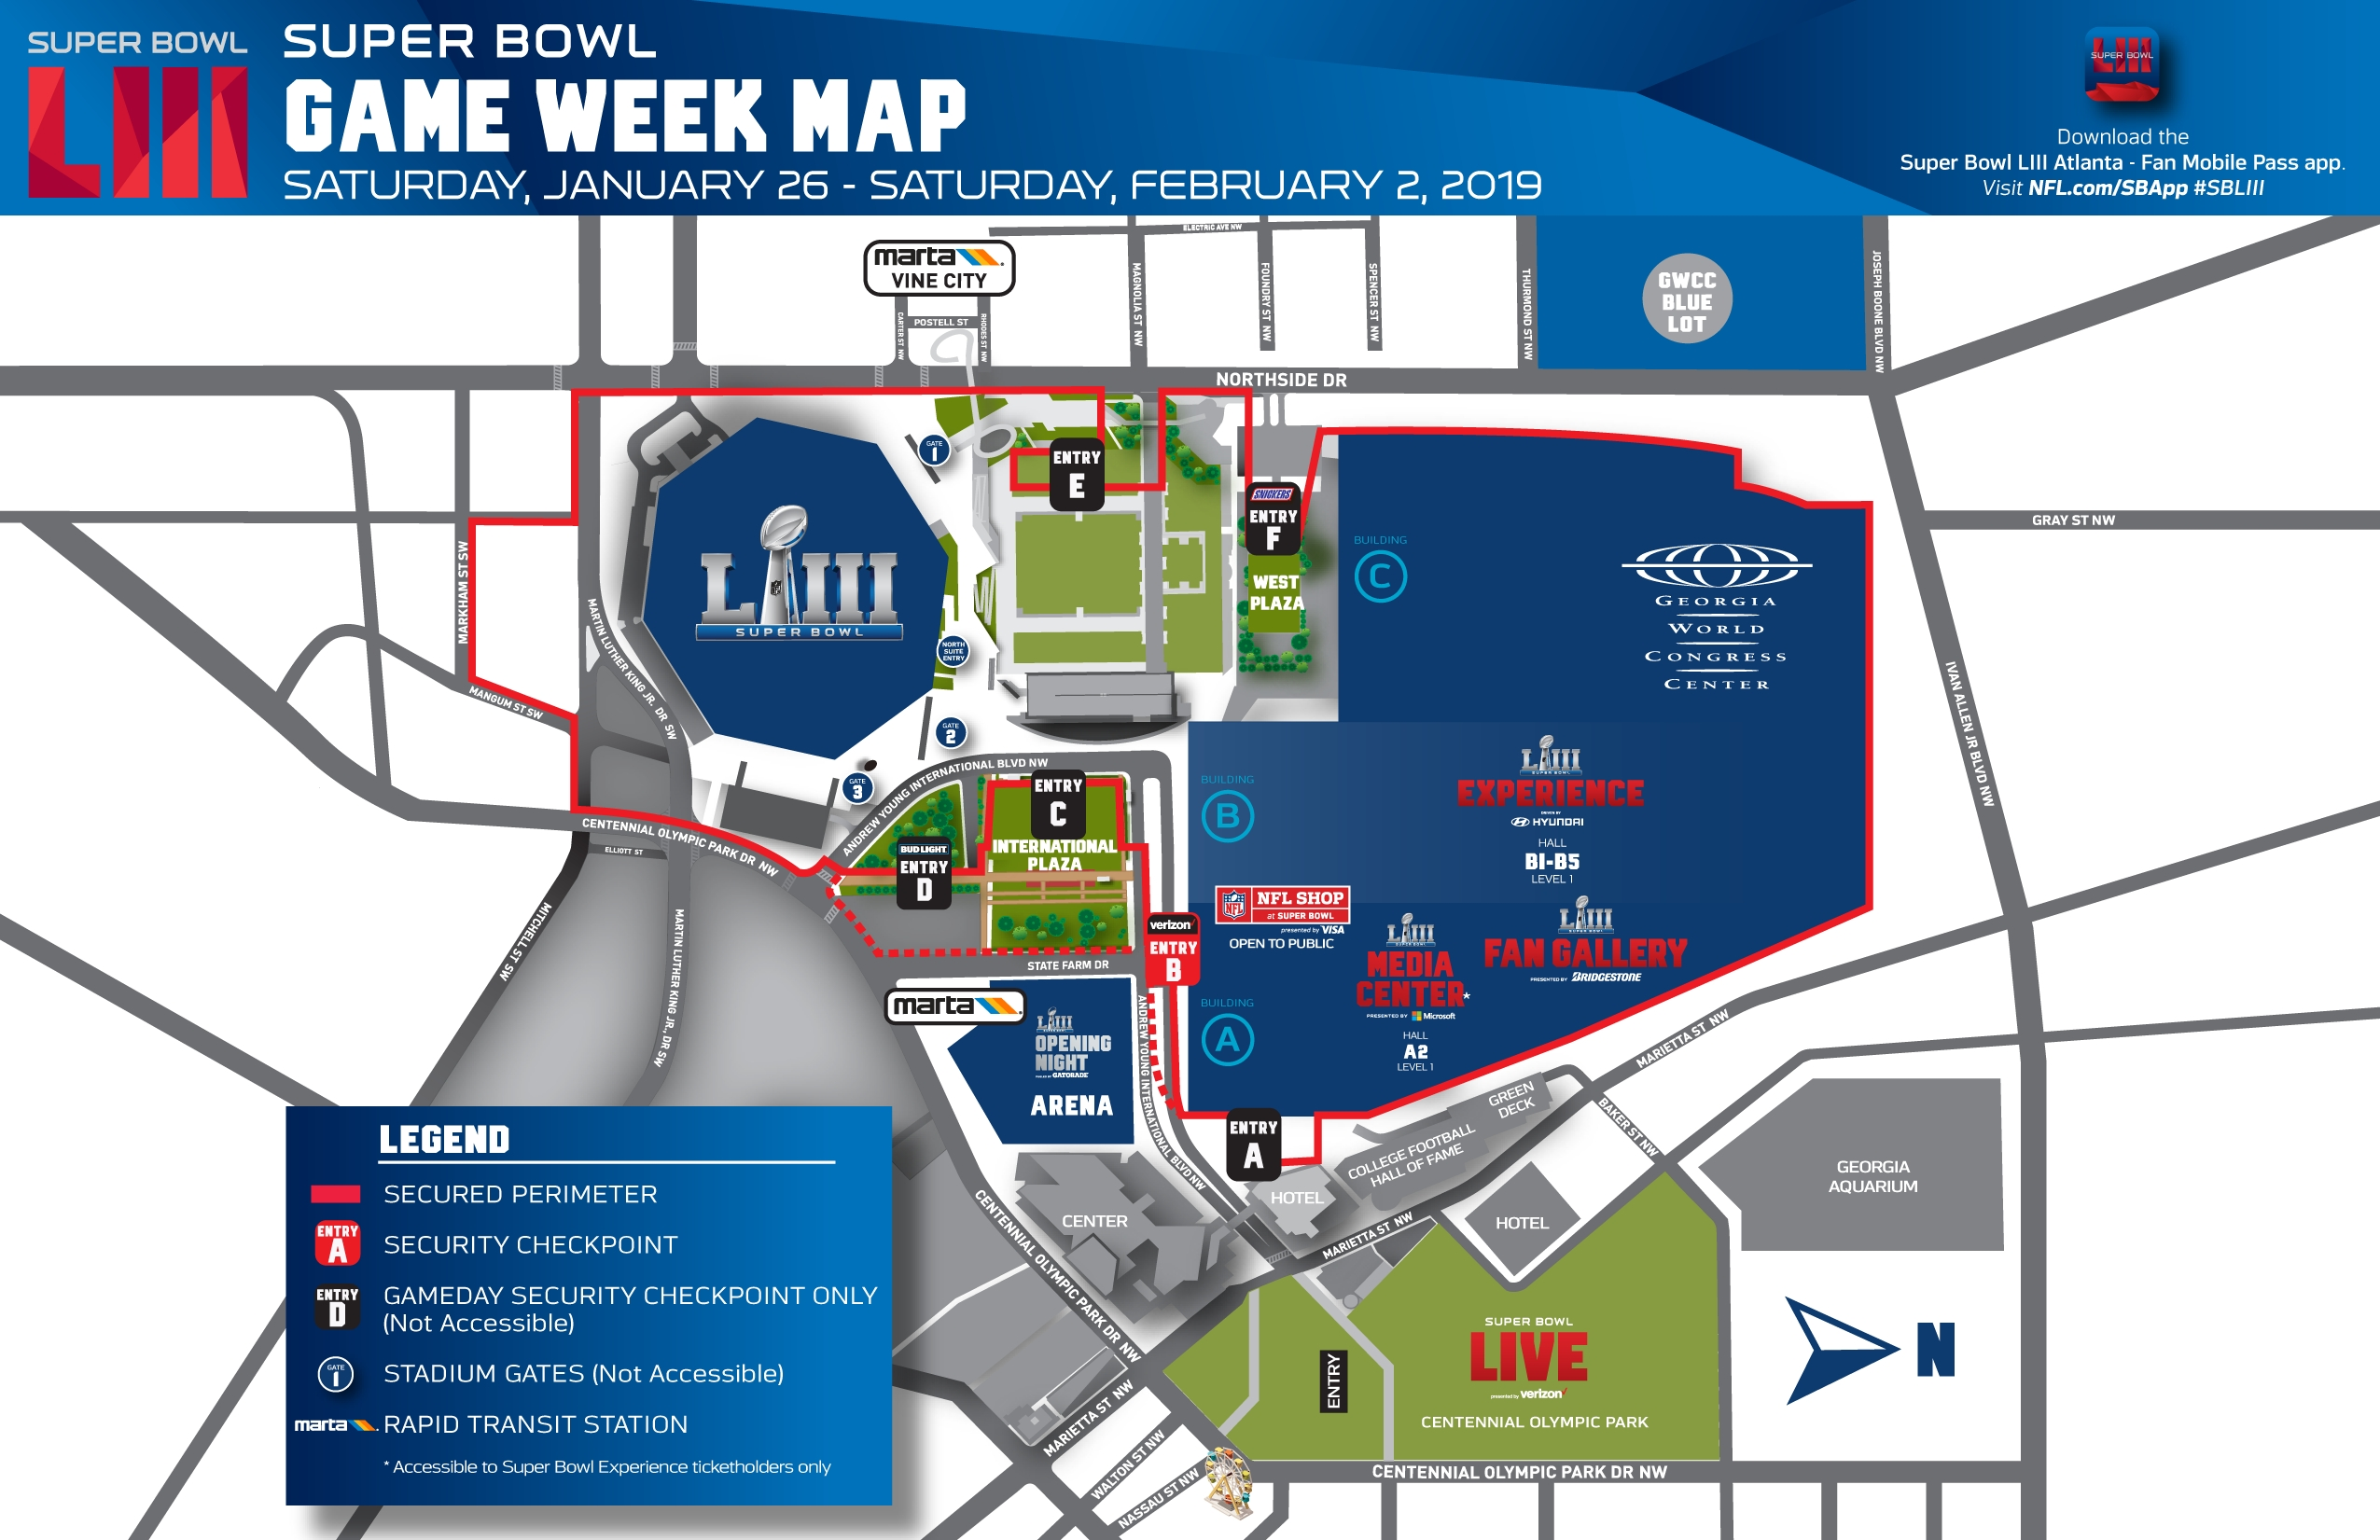 Super Bowl Experience | Nfl | Nfl within Super Bowl Fan Map 2019